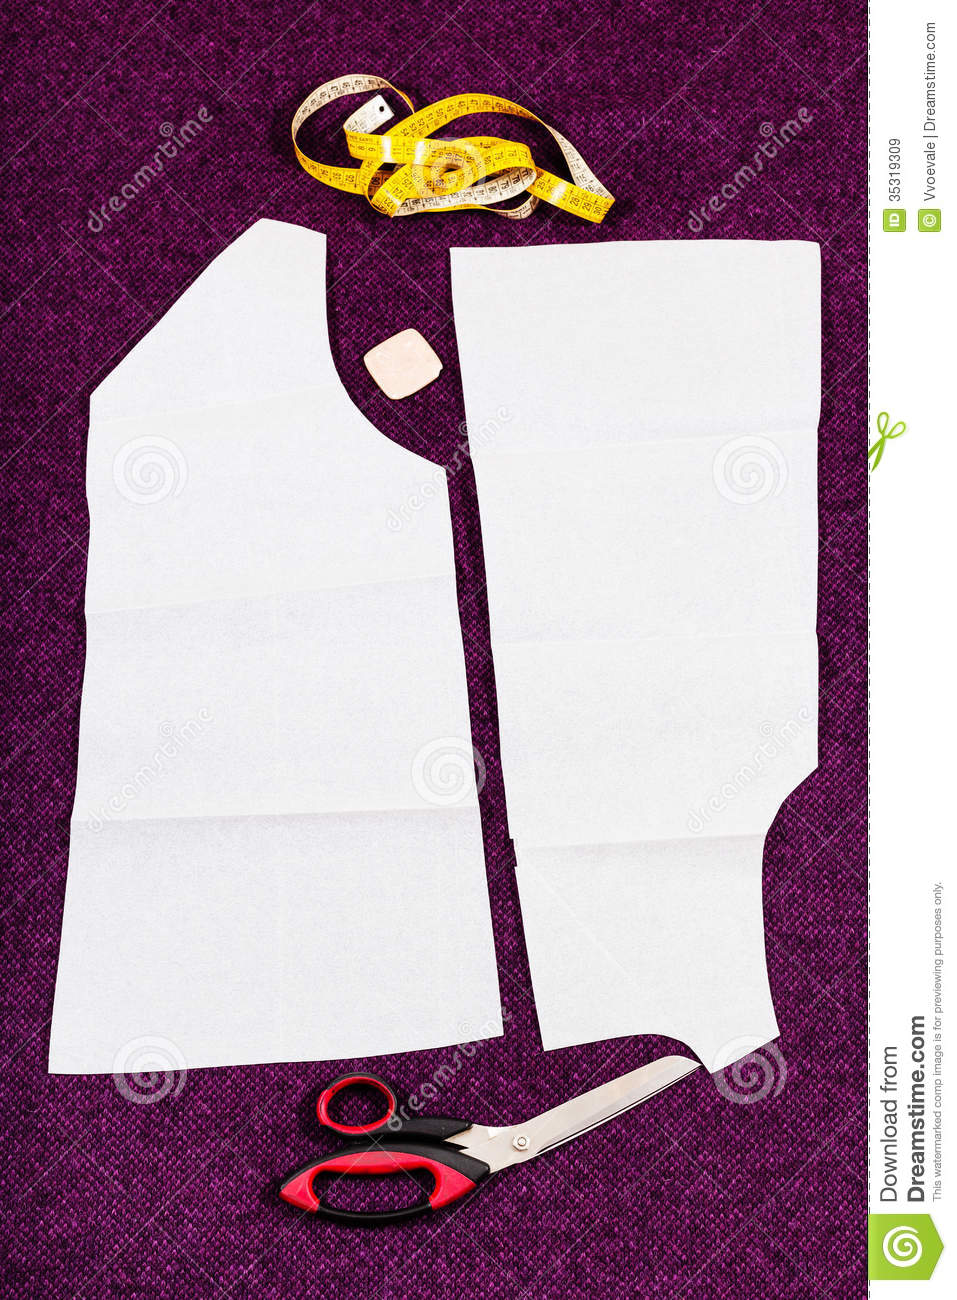 Tailor Tools And Pattern Cutting Of Clothes Stock Image